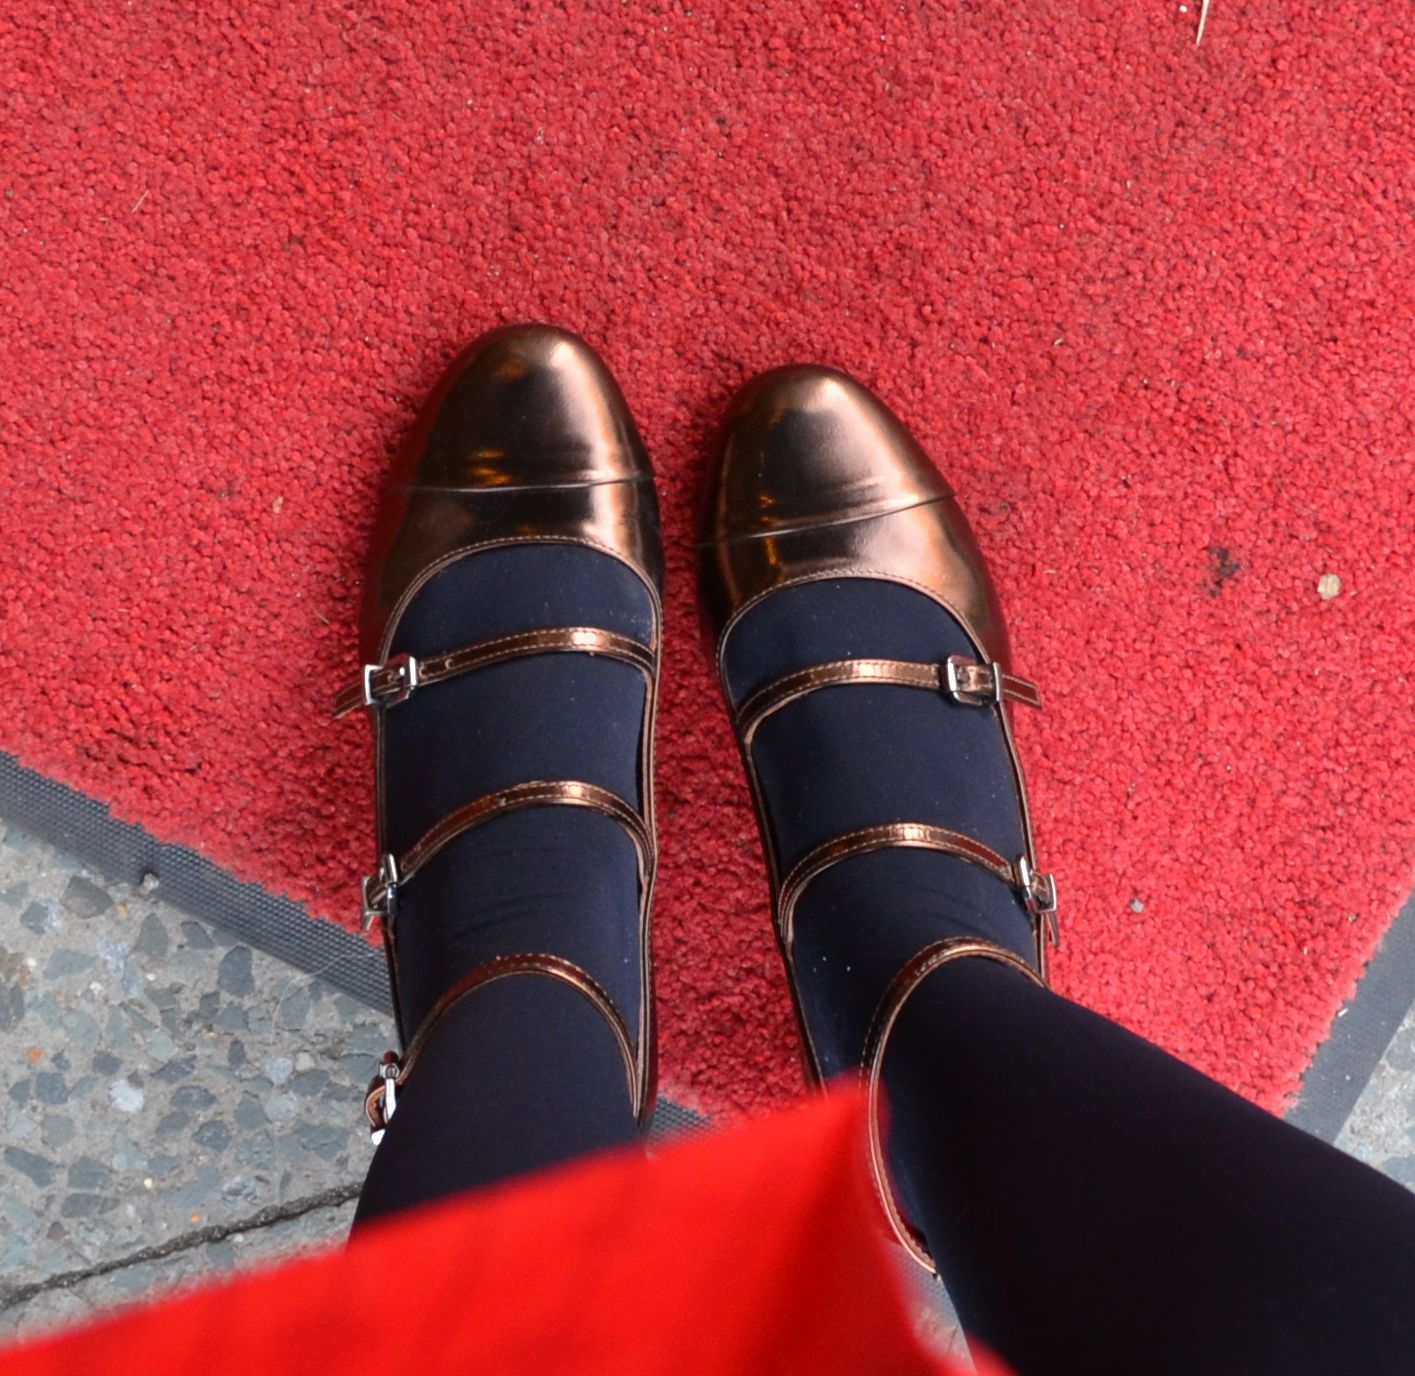 Bronze pumps with midi heel and three straps from Max & Co